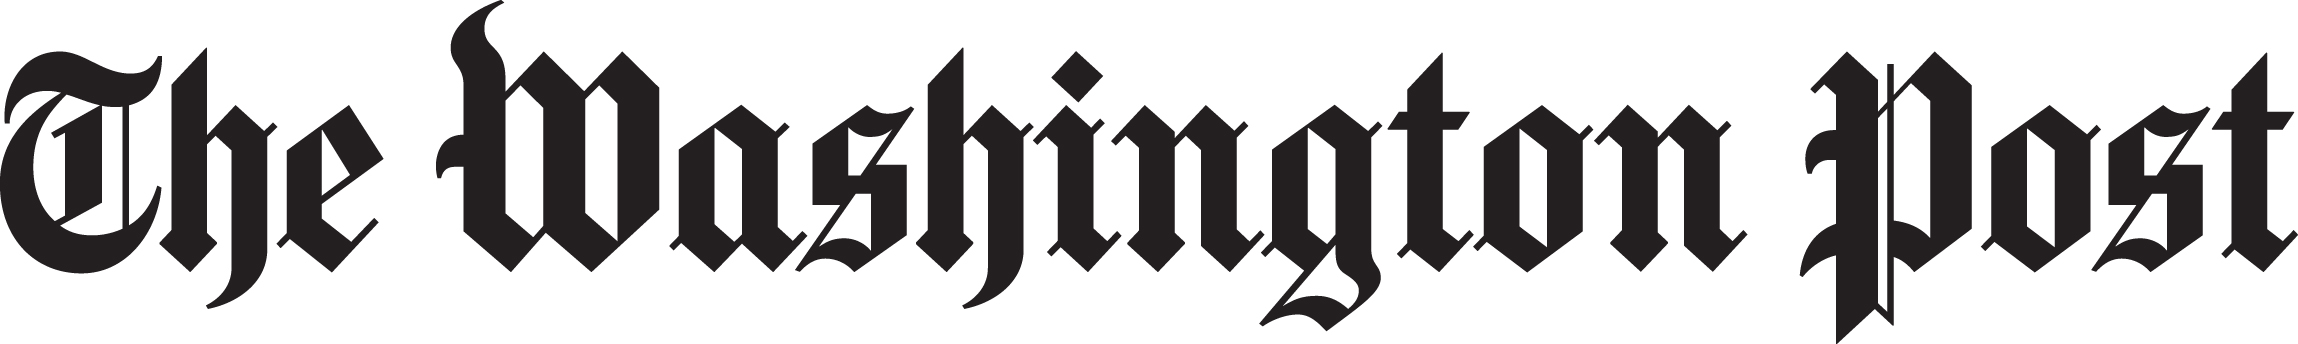 washington-post-logo.jpg